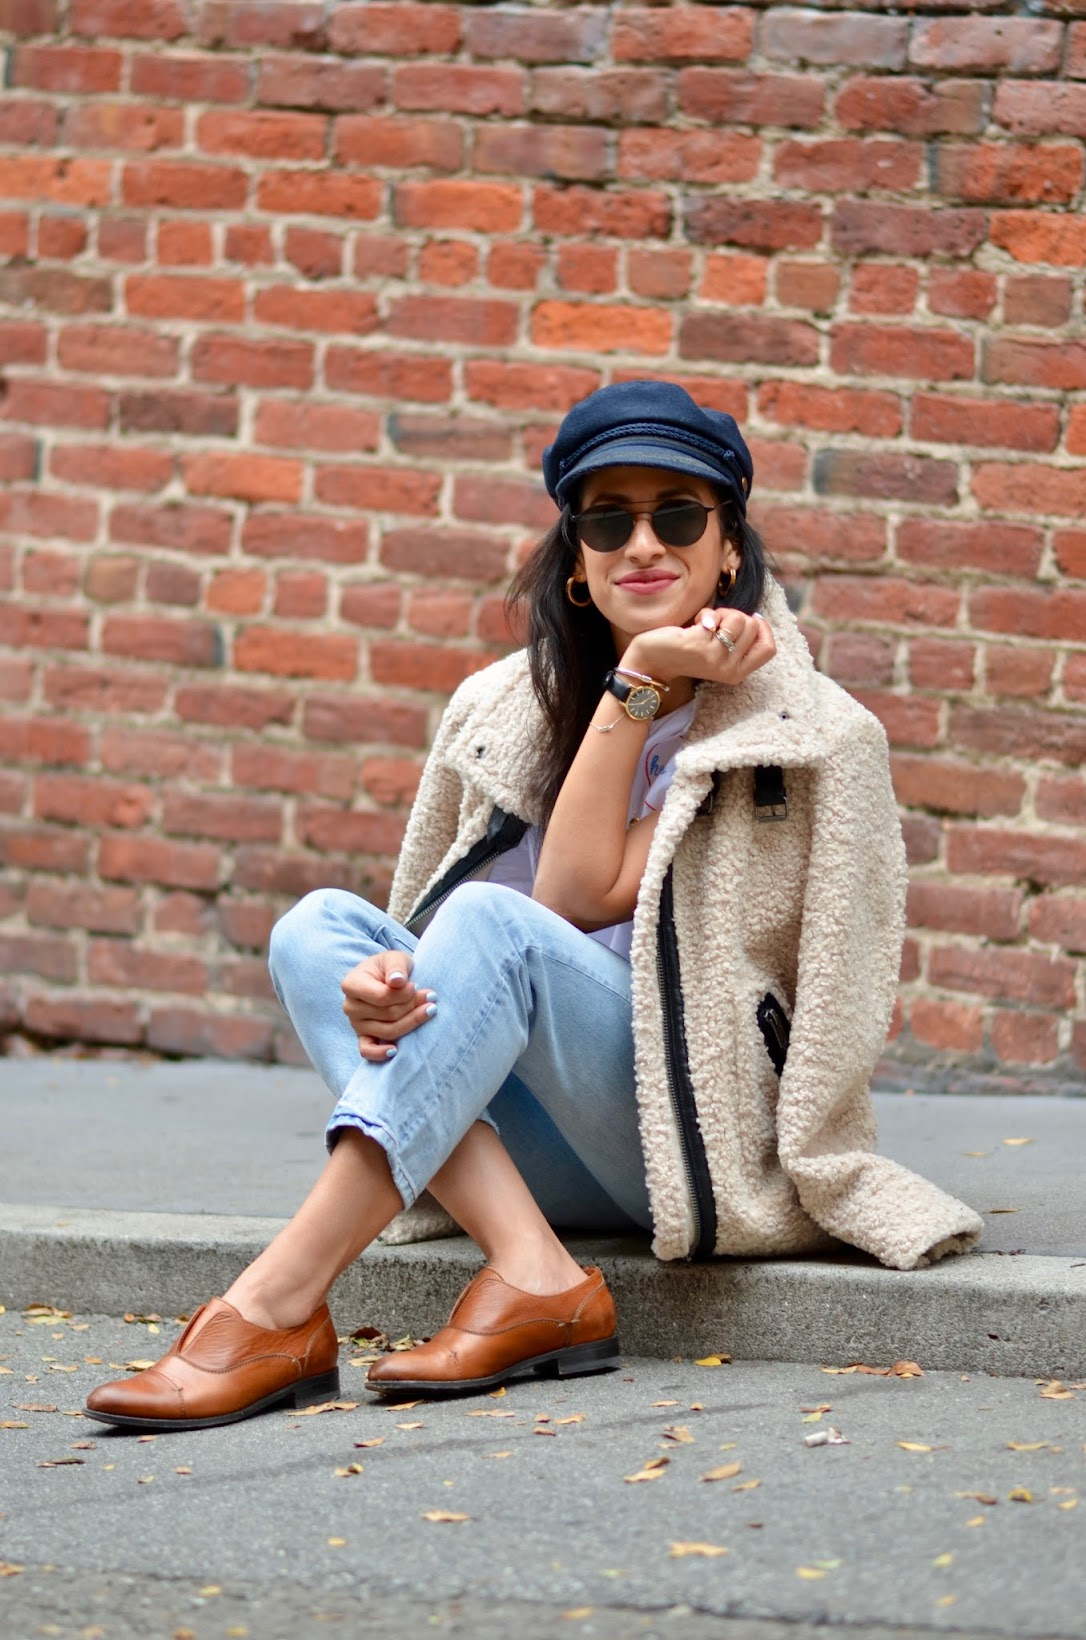 Le Point SF boutique, Keur Paris tee, San Francisco winter style, sherpa coat, Baker Boy hat, YSL glow shot, casual weekend wear